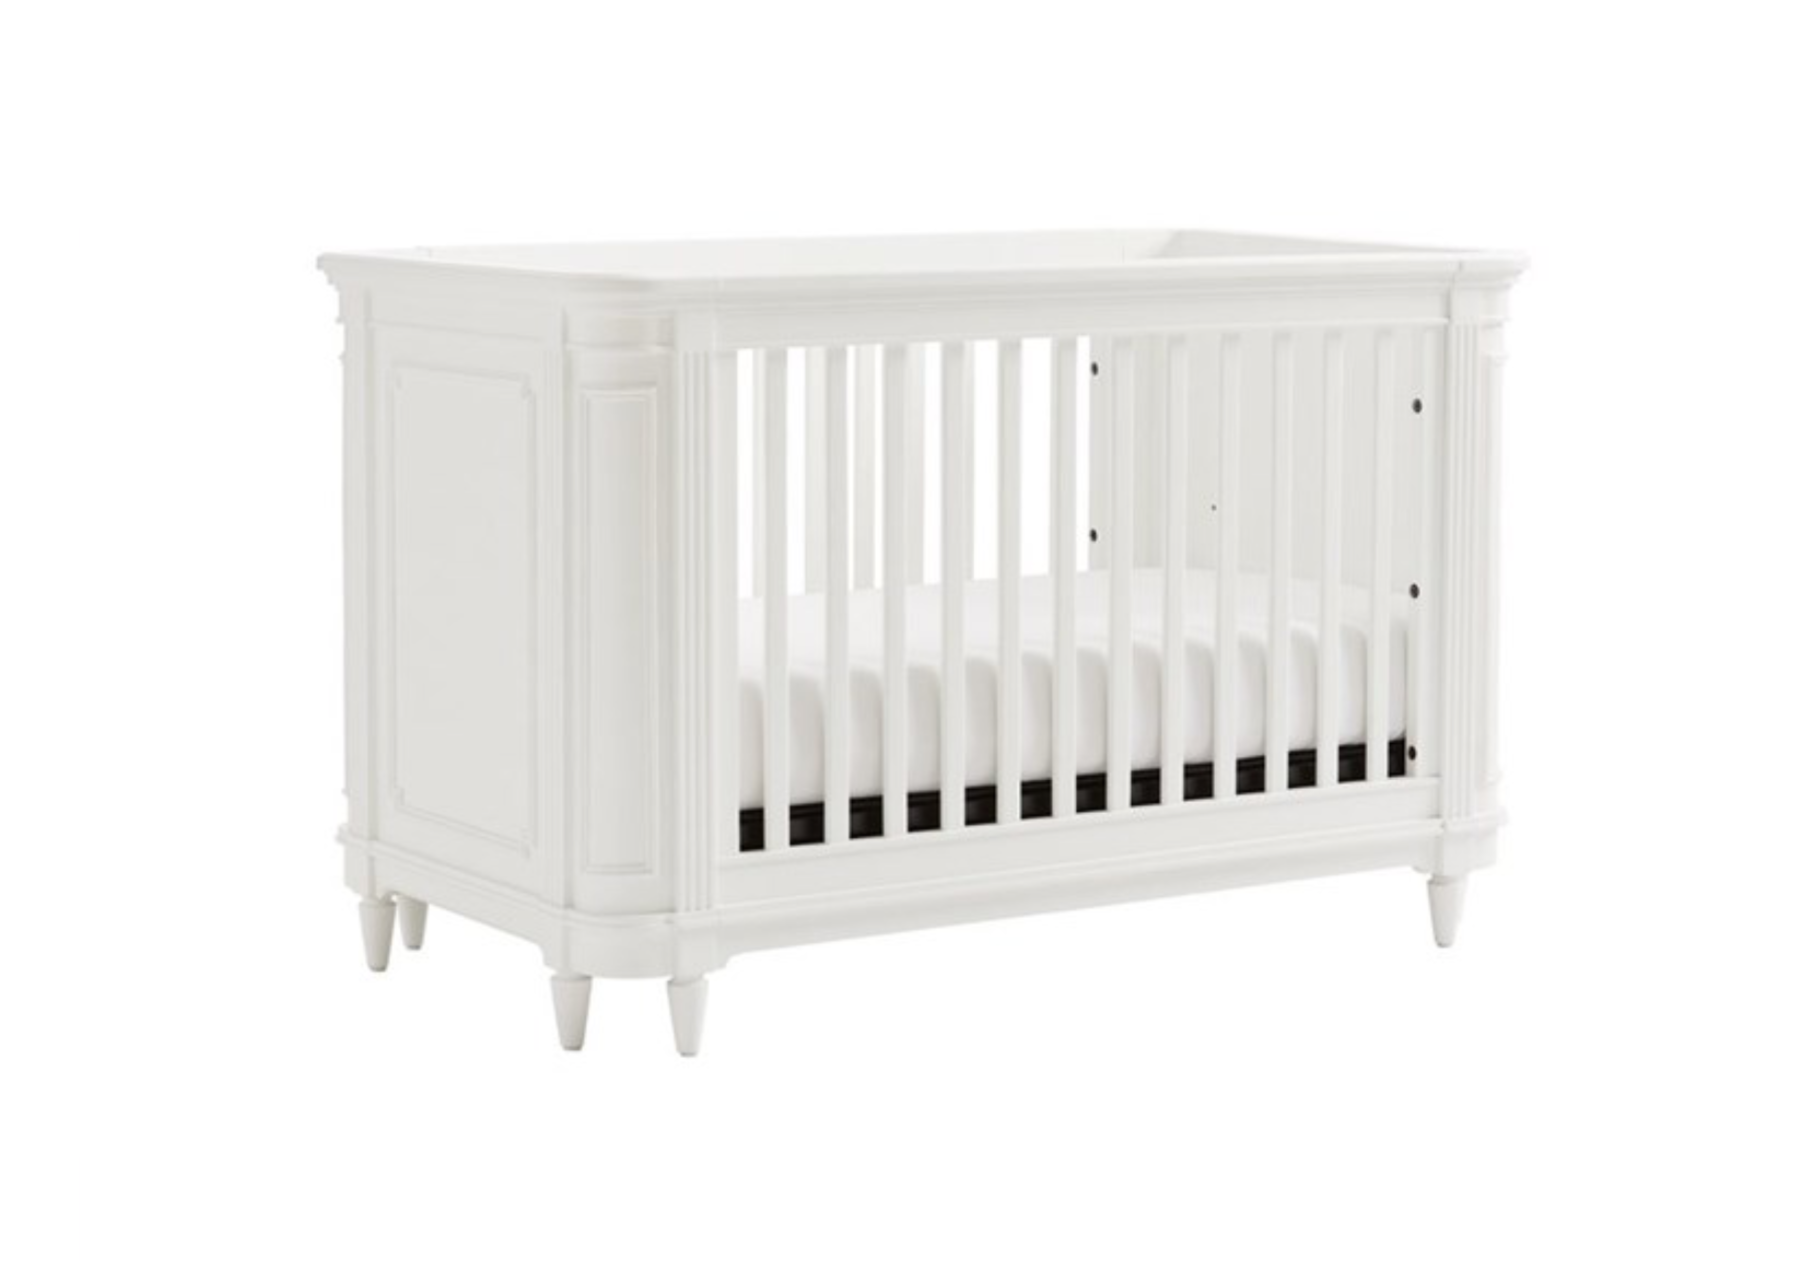 Stone & Leigh | Clementine Court | Stationary Crib